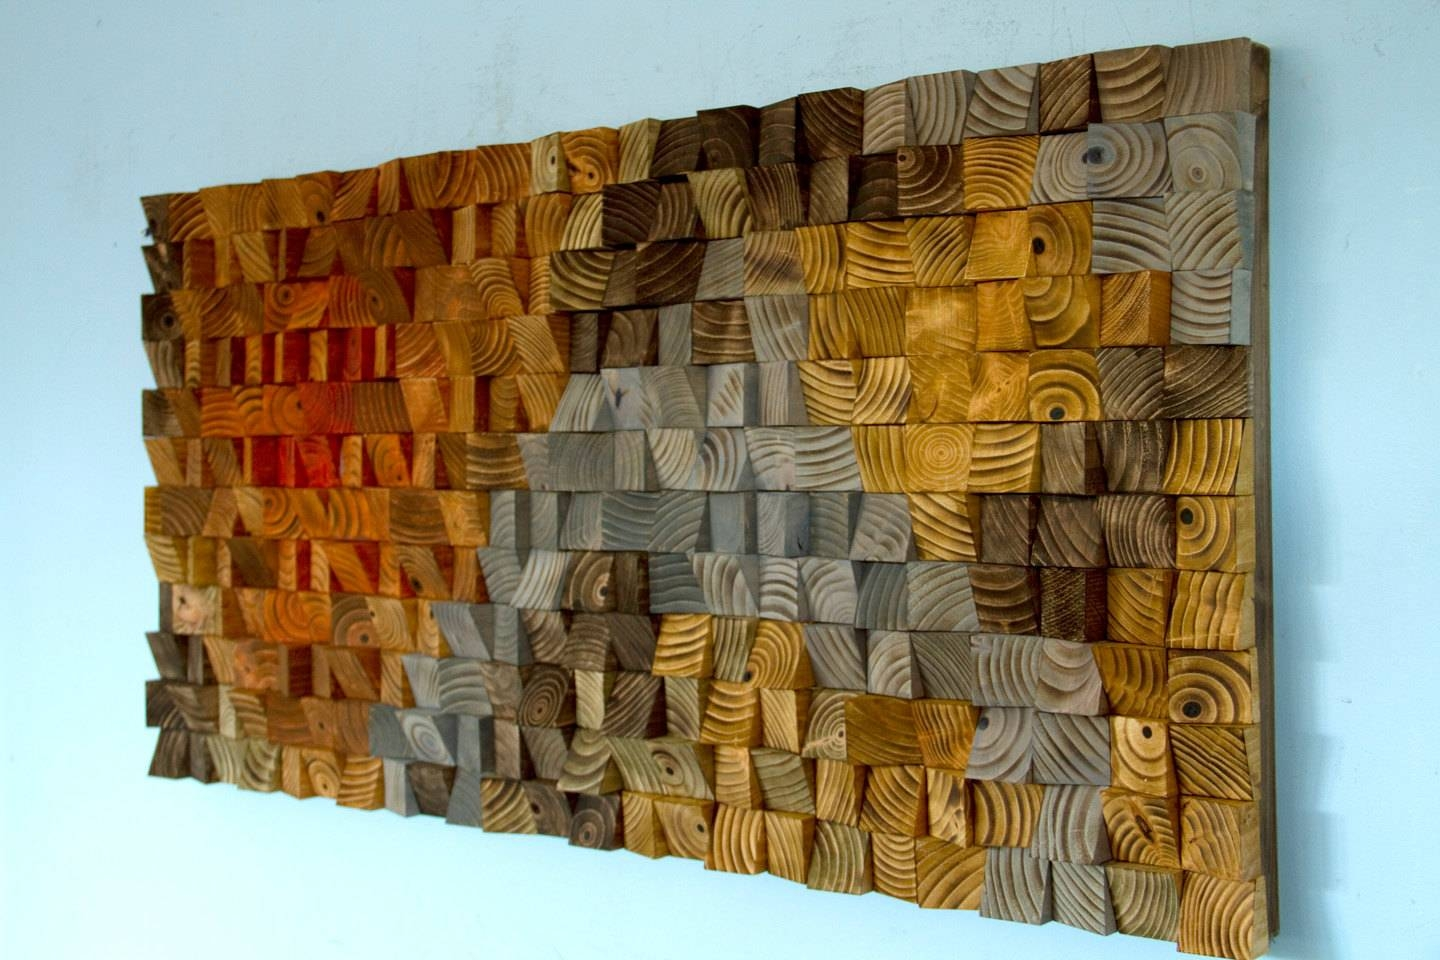 Rustic Wood Wall Art Wood Wall Sculpture Abstract Wood Art Within Latest Wall Art On Wood (View 3 of 20)